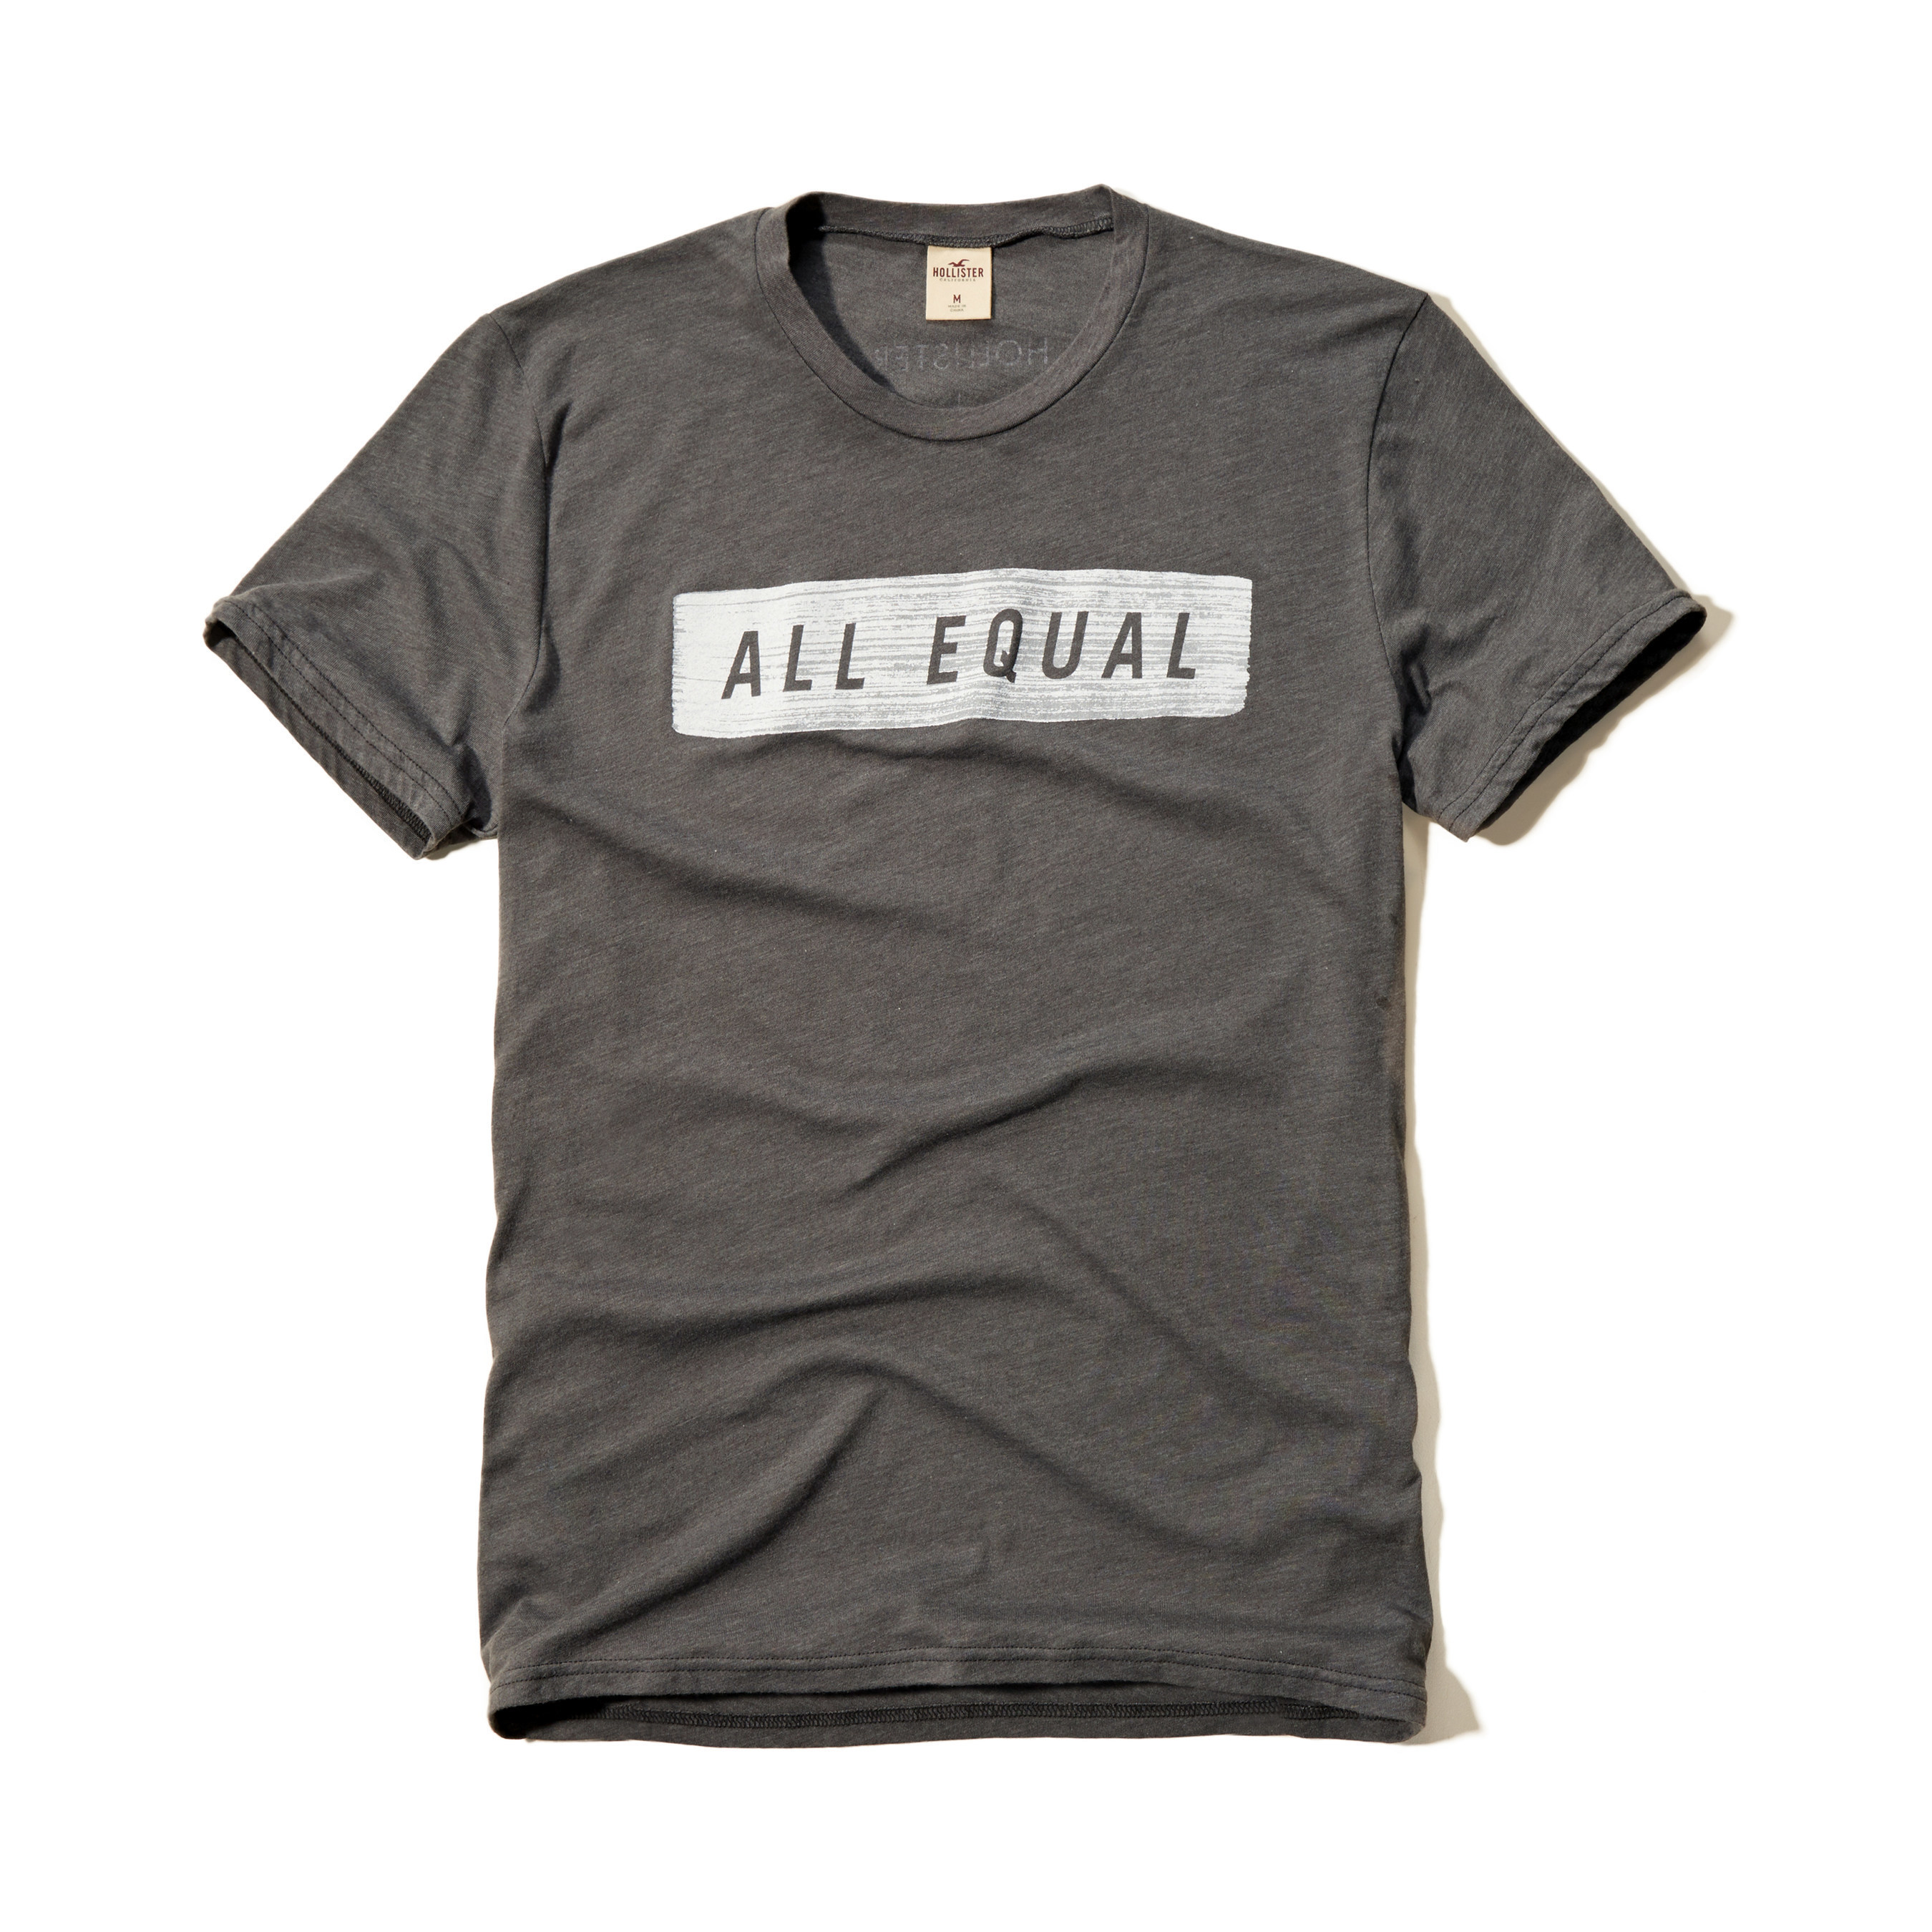 Hollister Boys T-Shirt in support of All Equal, an anti-bullying campaign with Echosmith